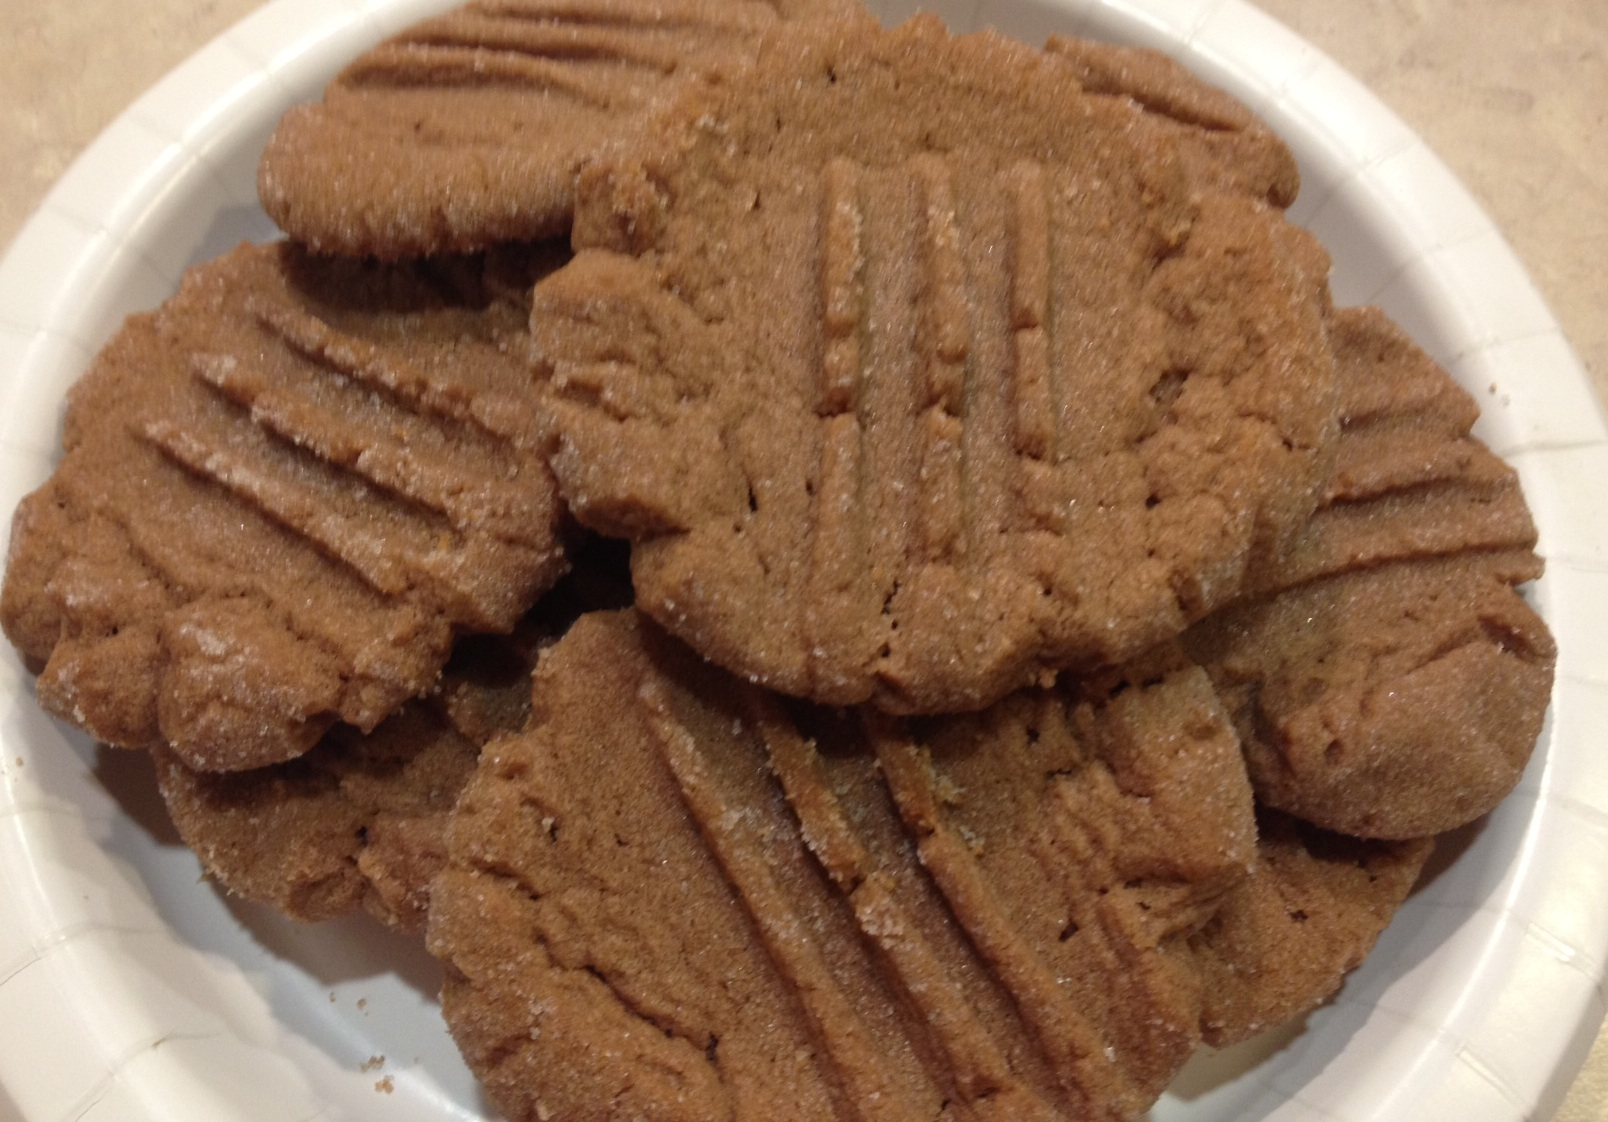 A different take on peanut butter cookies...add nutella!